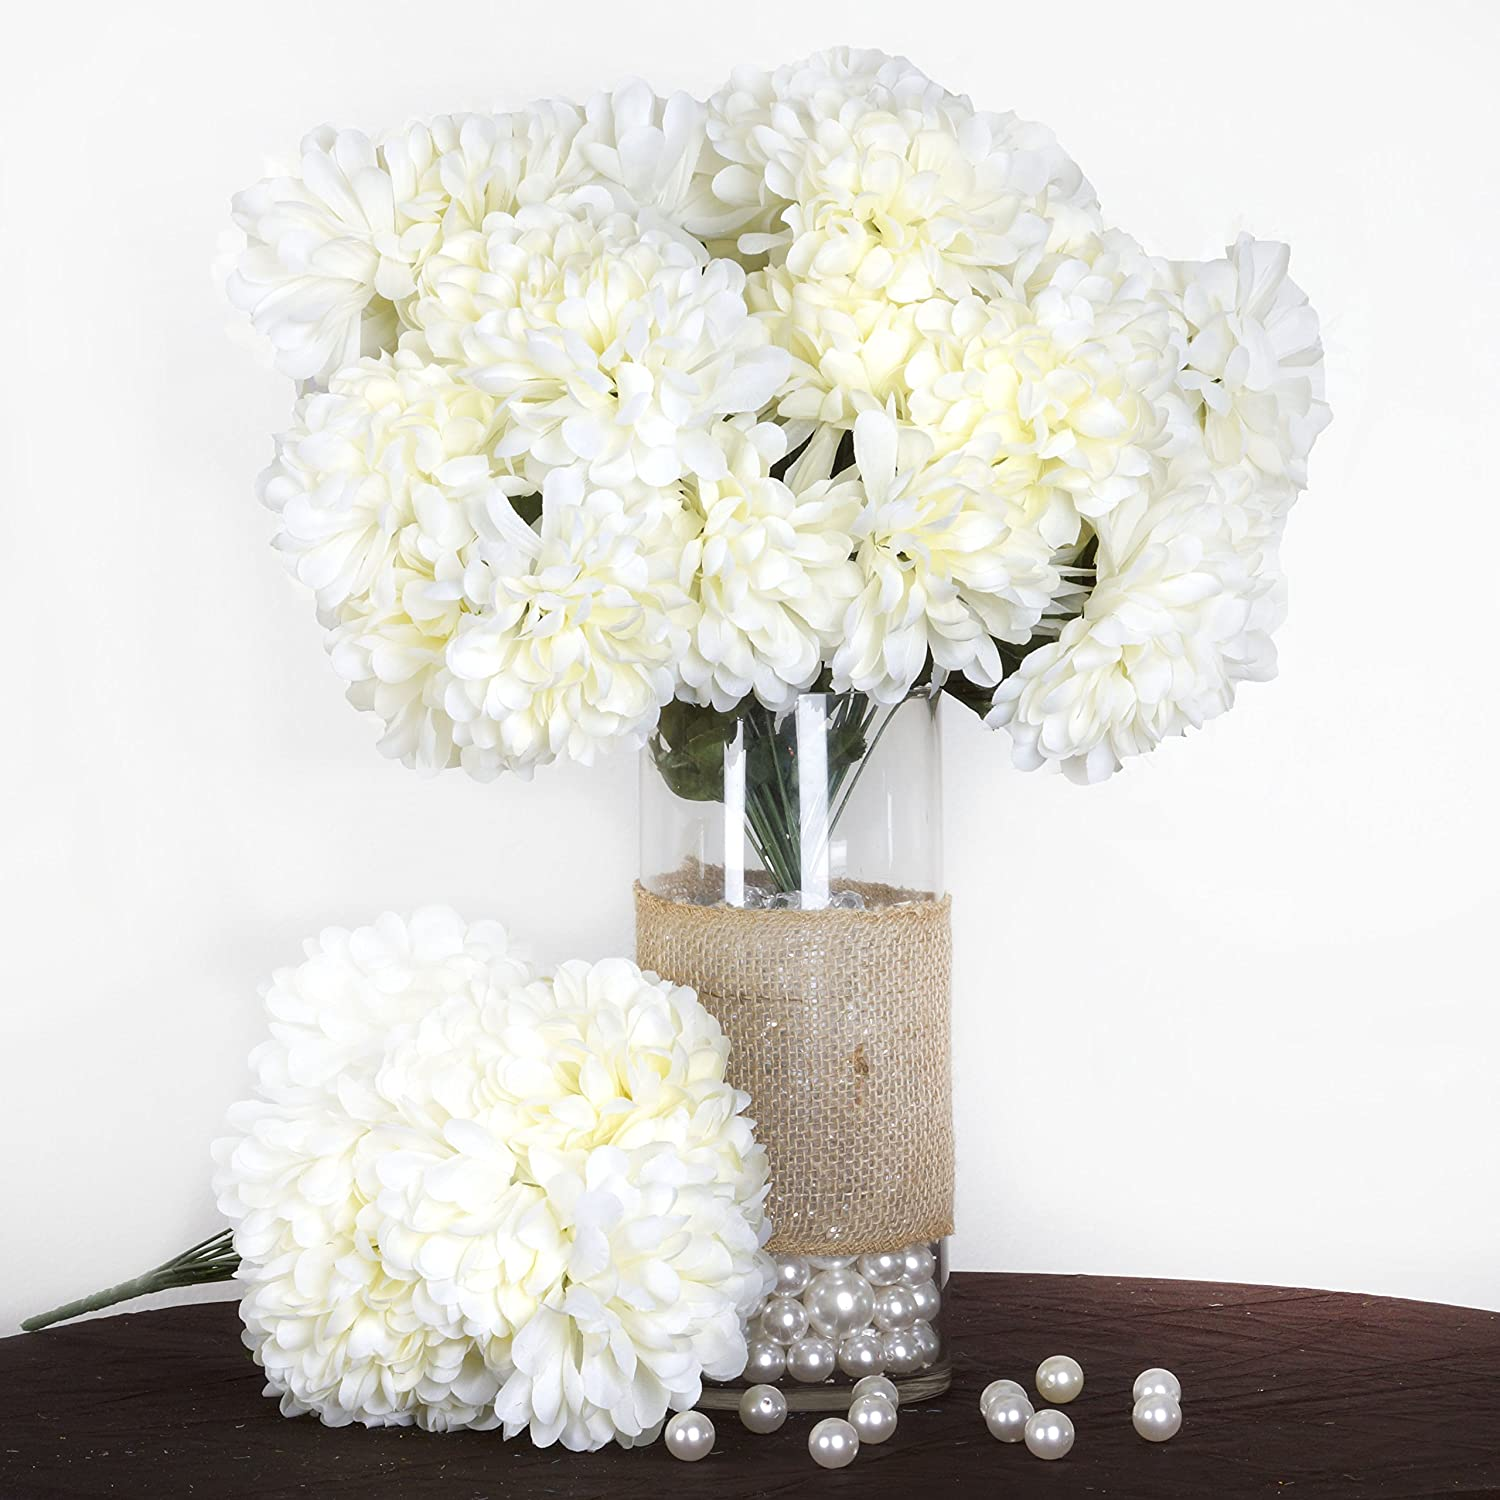 Amazon.com: Tableclothsfactory 56 Large Chrysanthemum Mums Balls ...